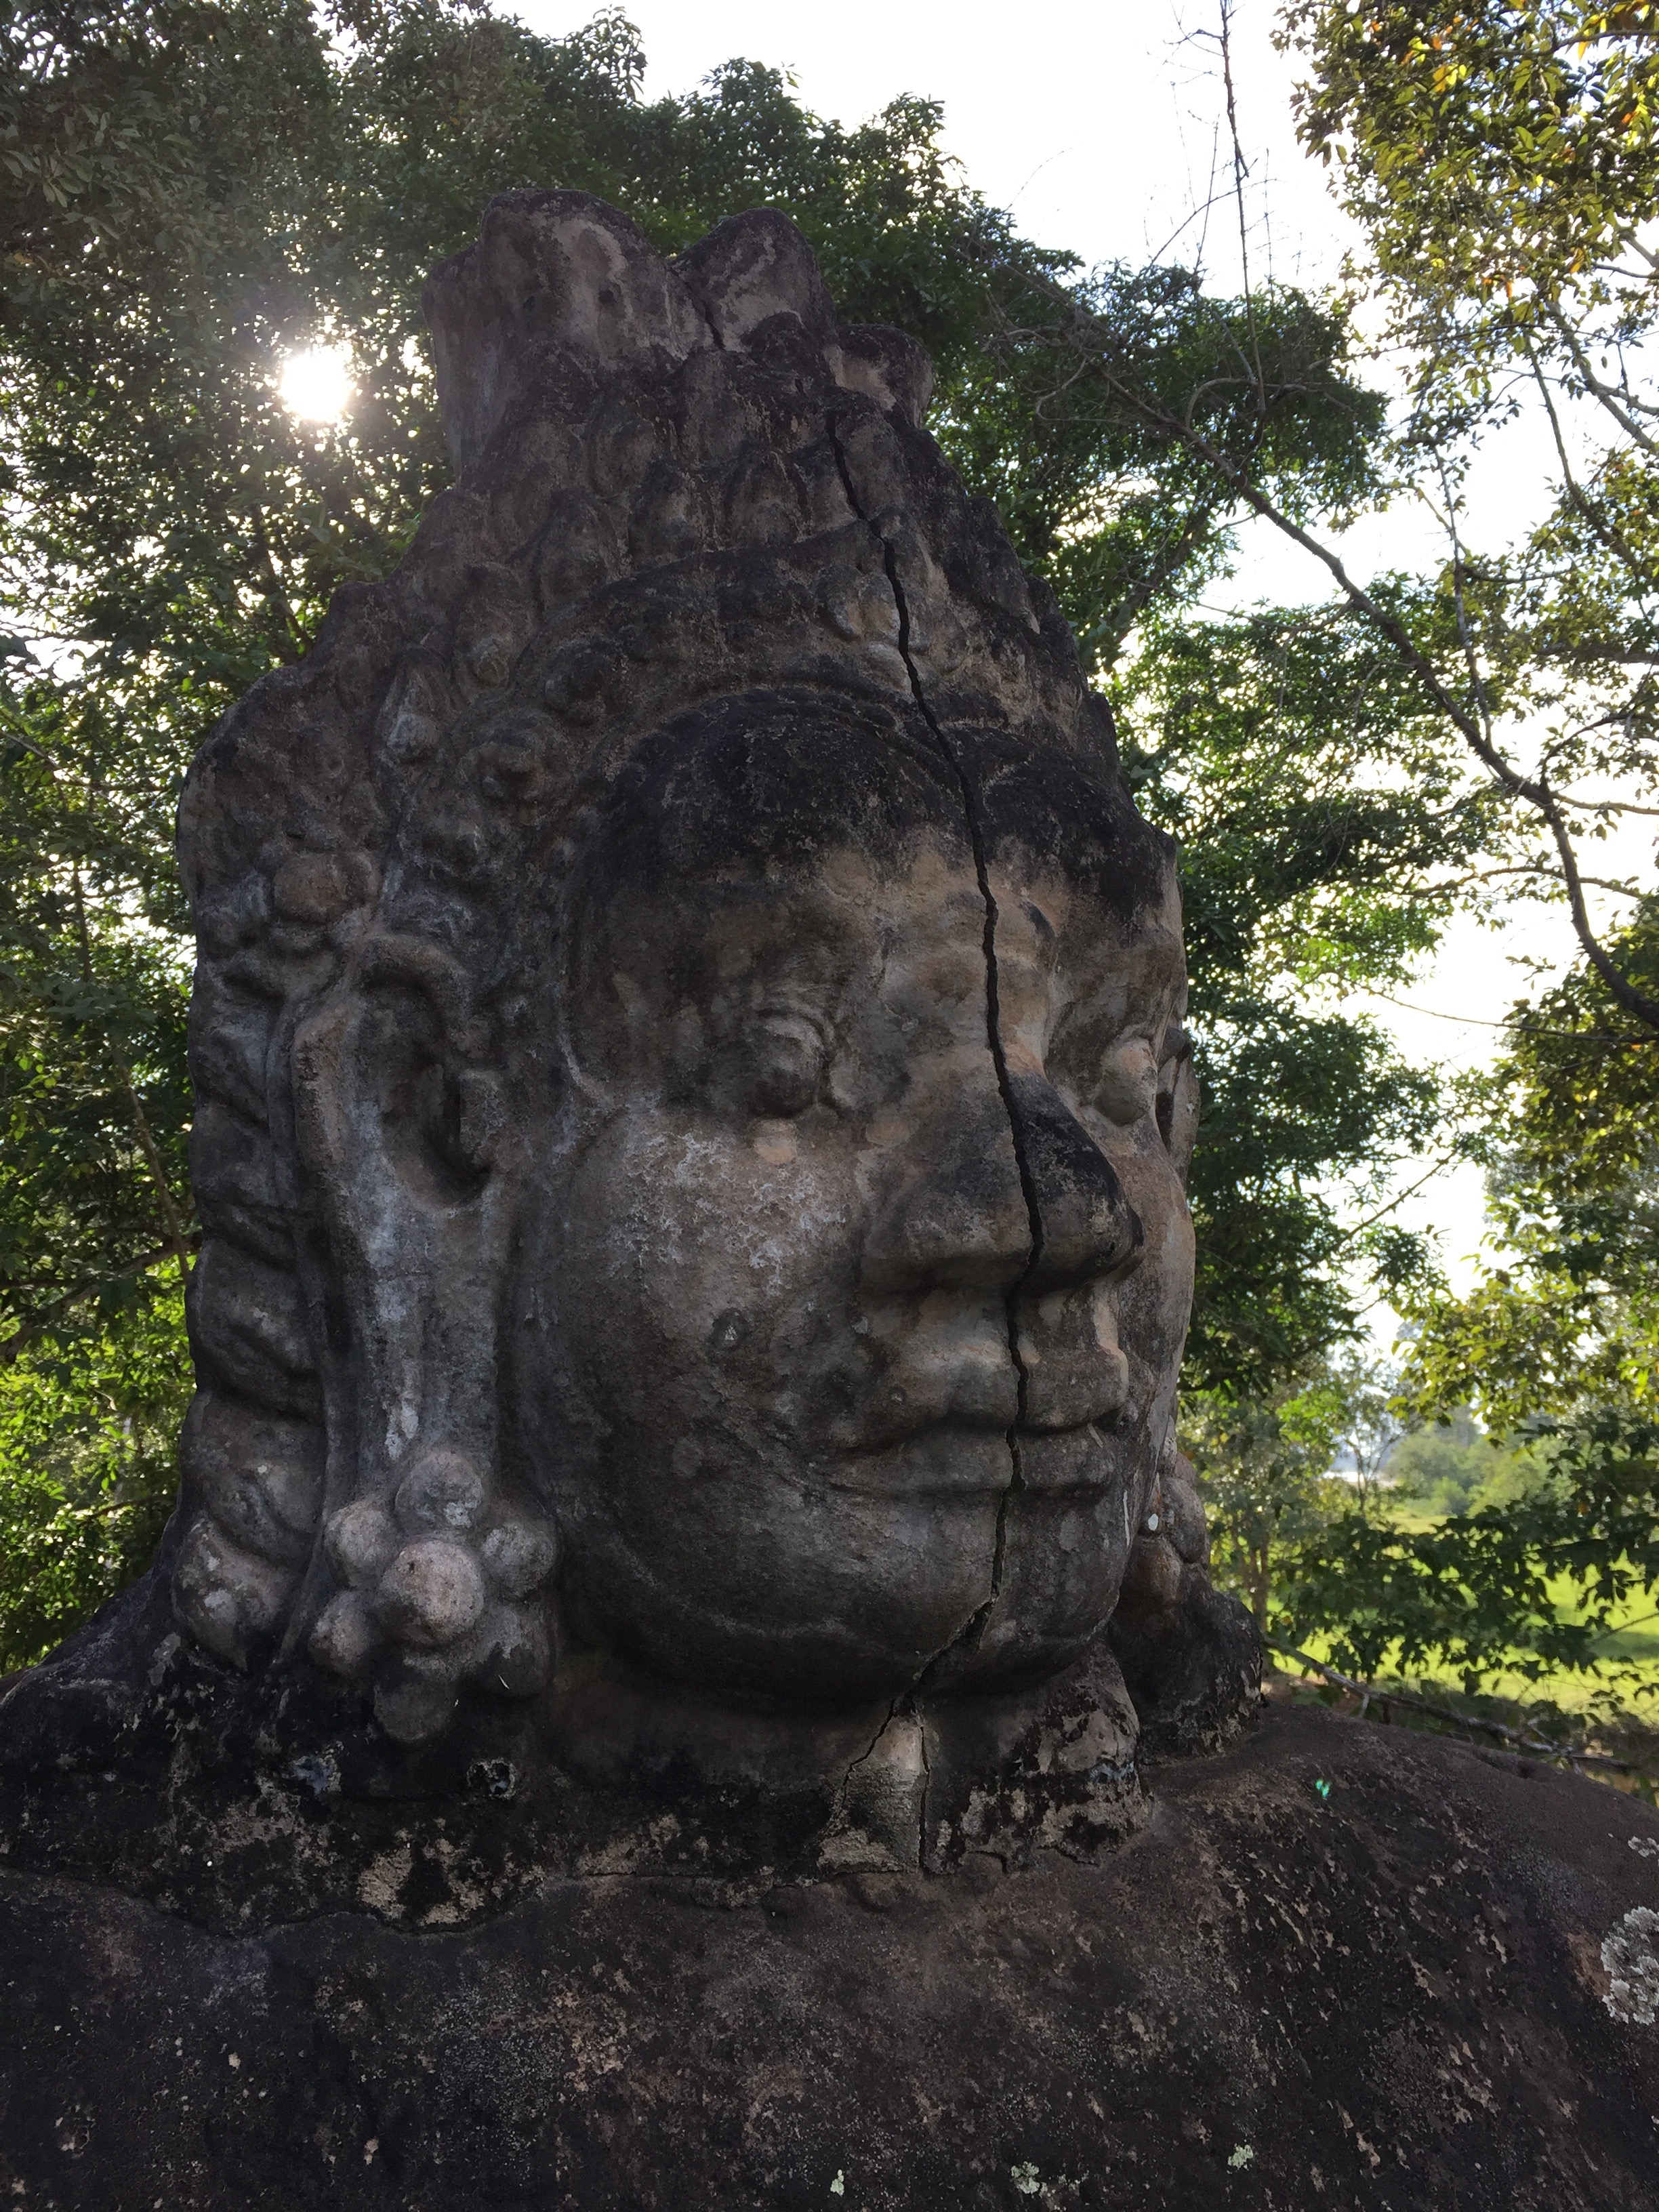 Huge stone head outside the entrance to Angkor Thom.